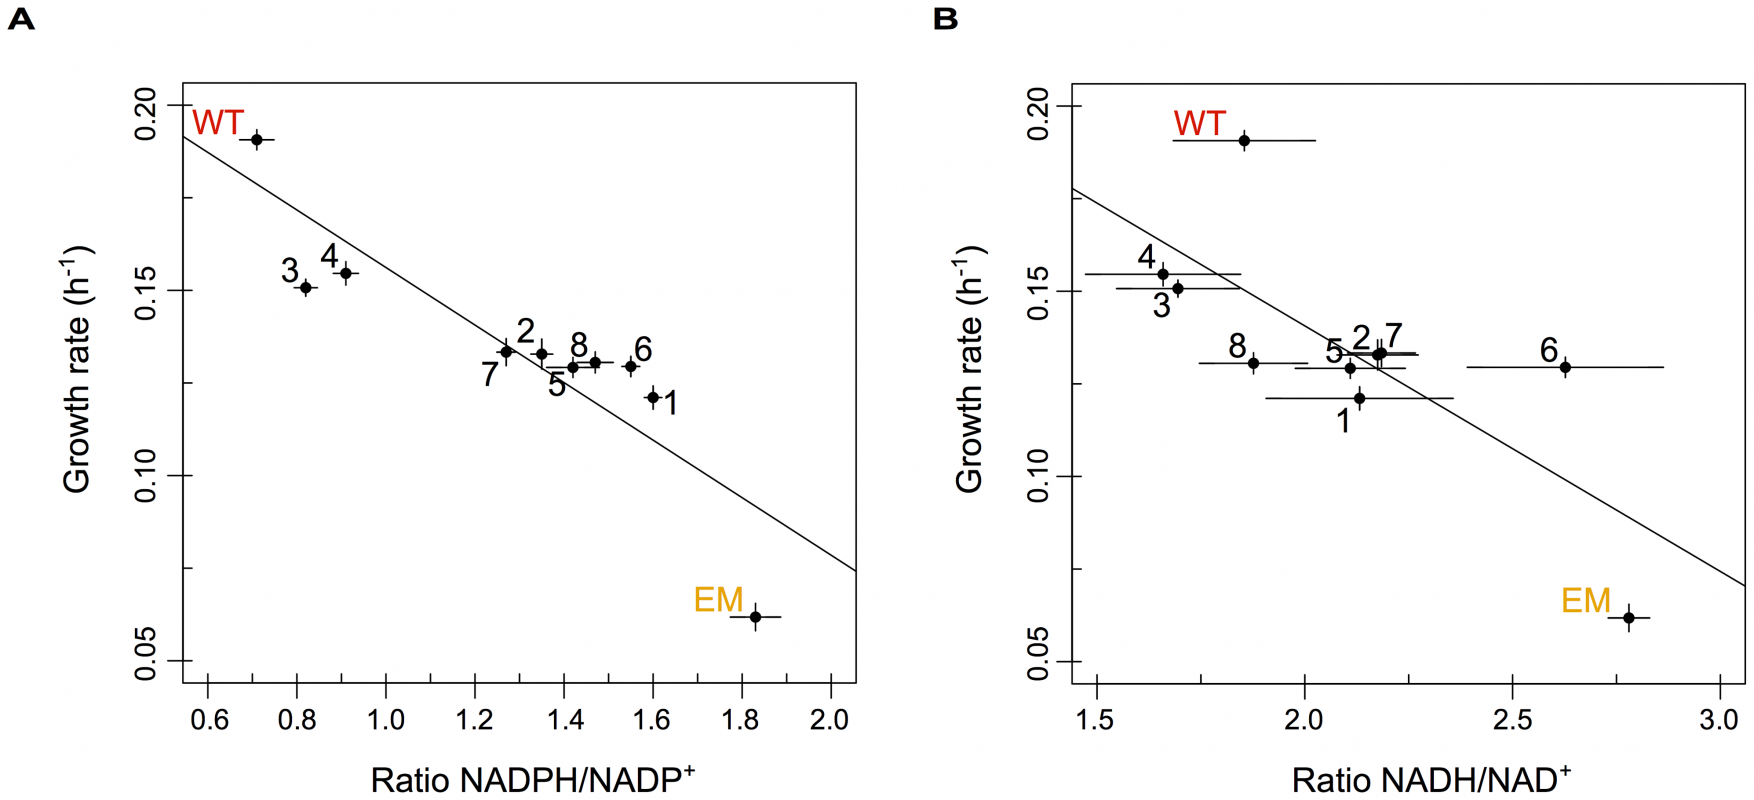 The redox states of pyridine nucleotides are perturbed in EM but restored through evolution.